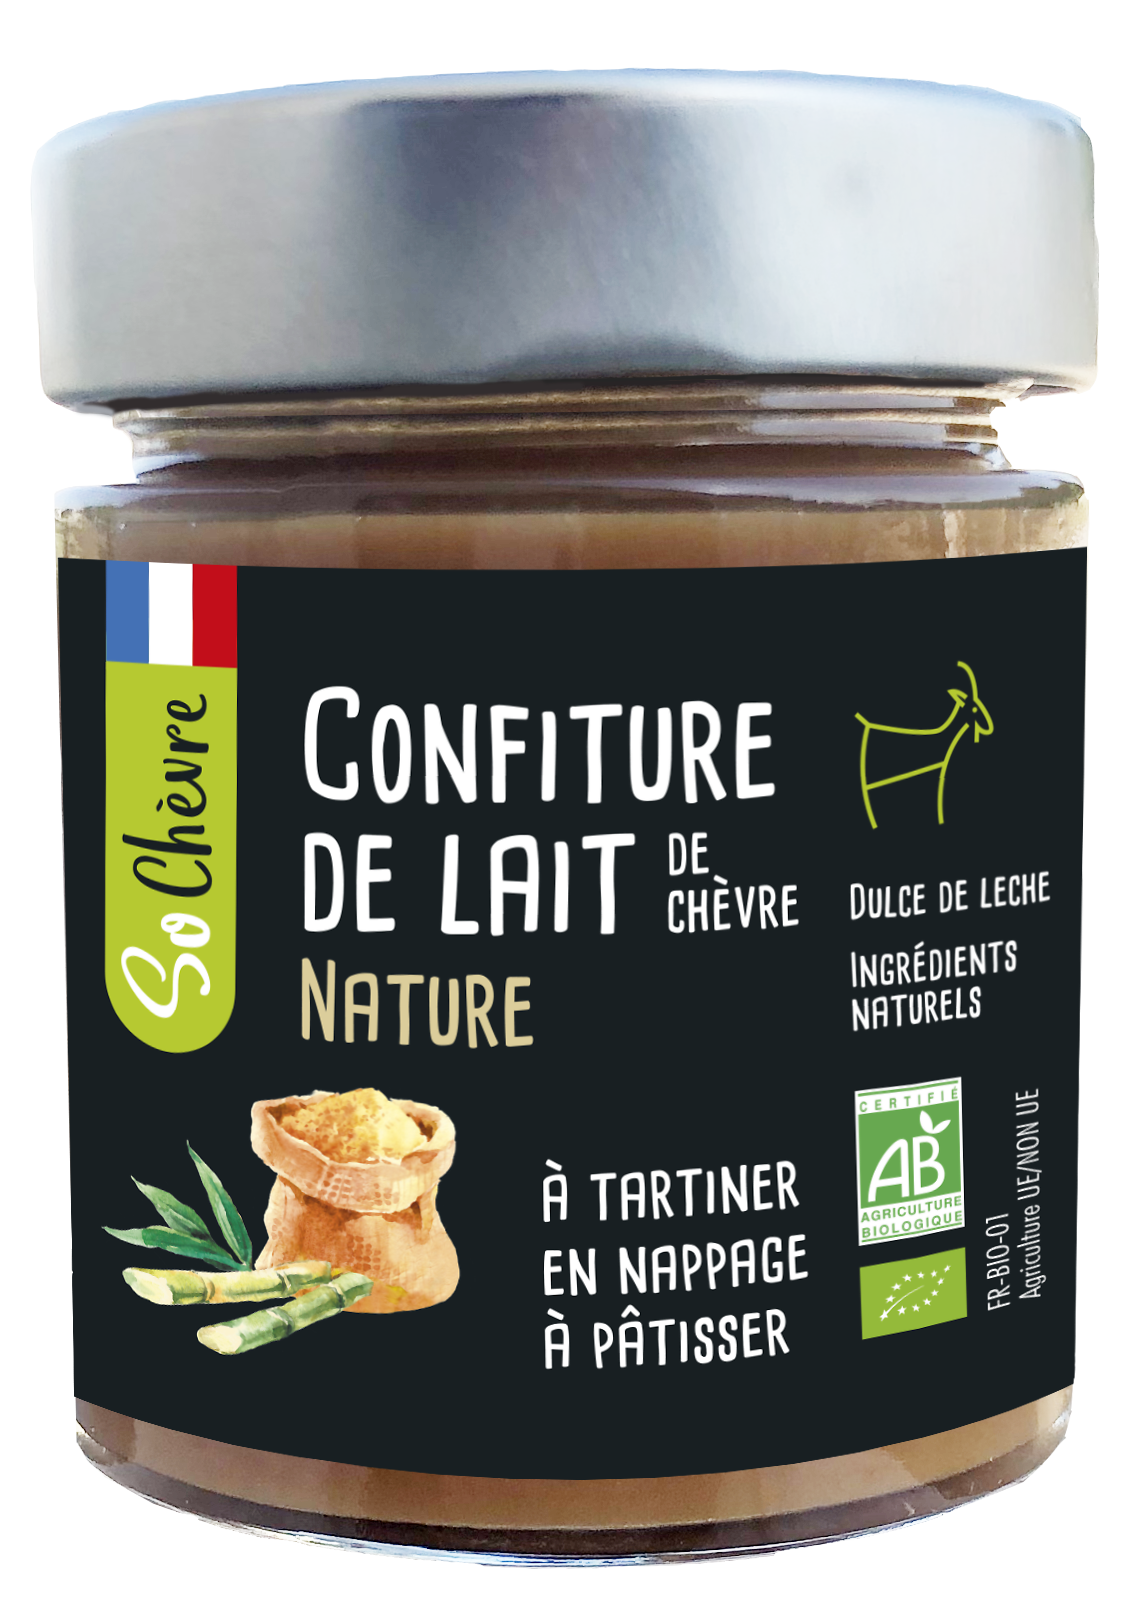 Confiture de lait So Chèvre nature 180g